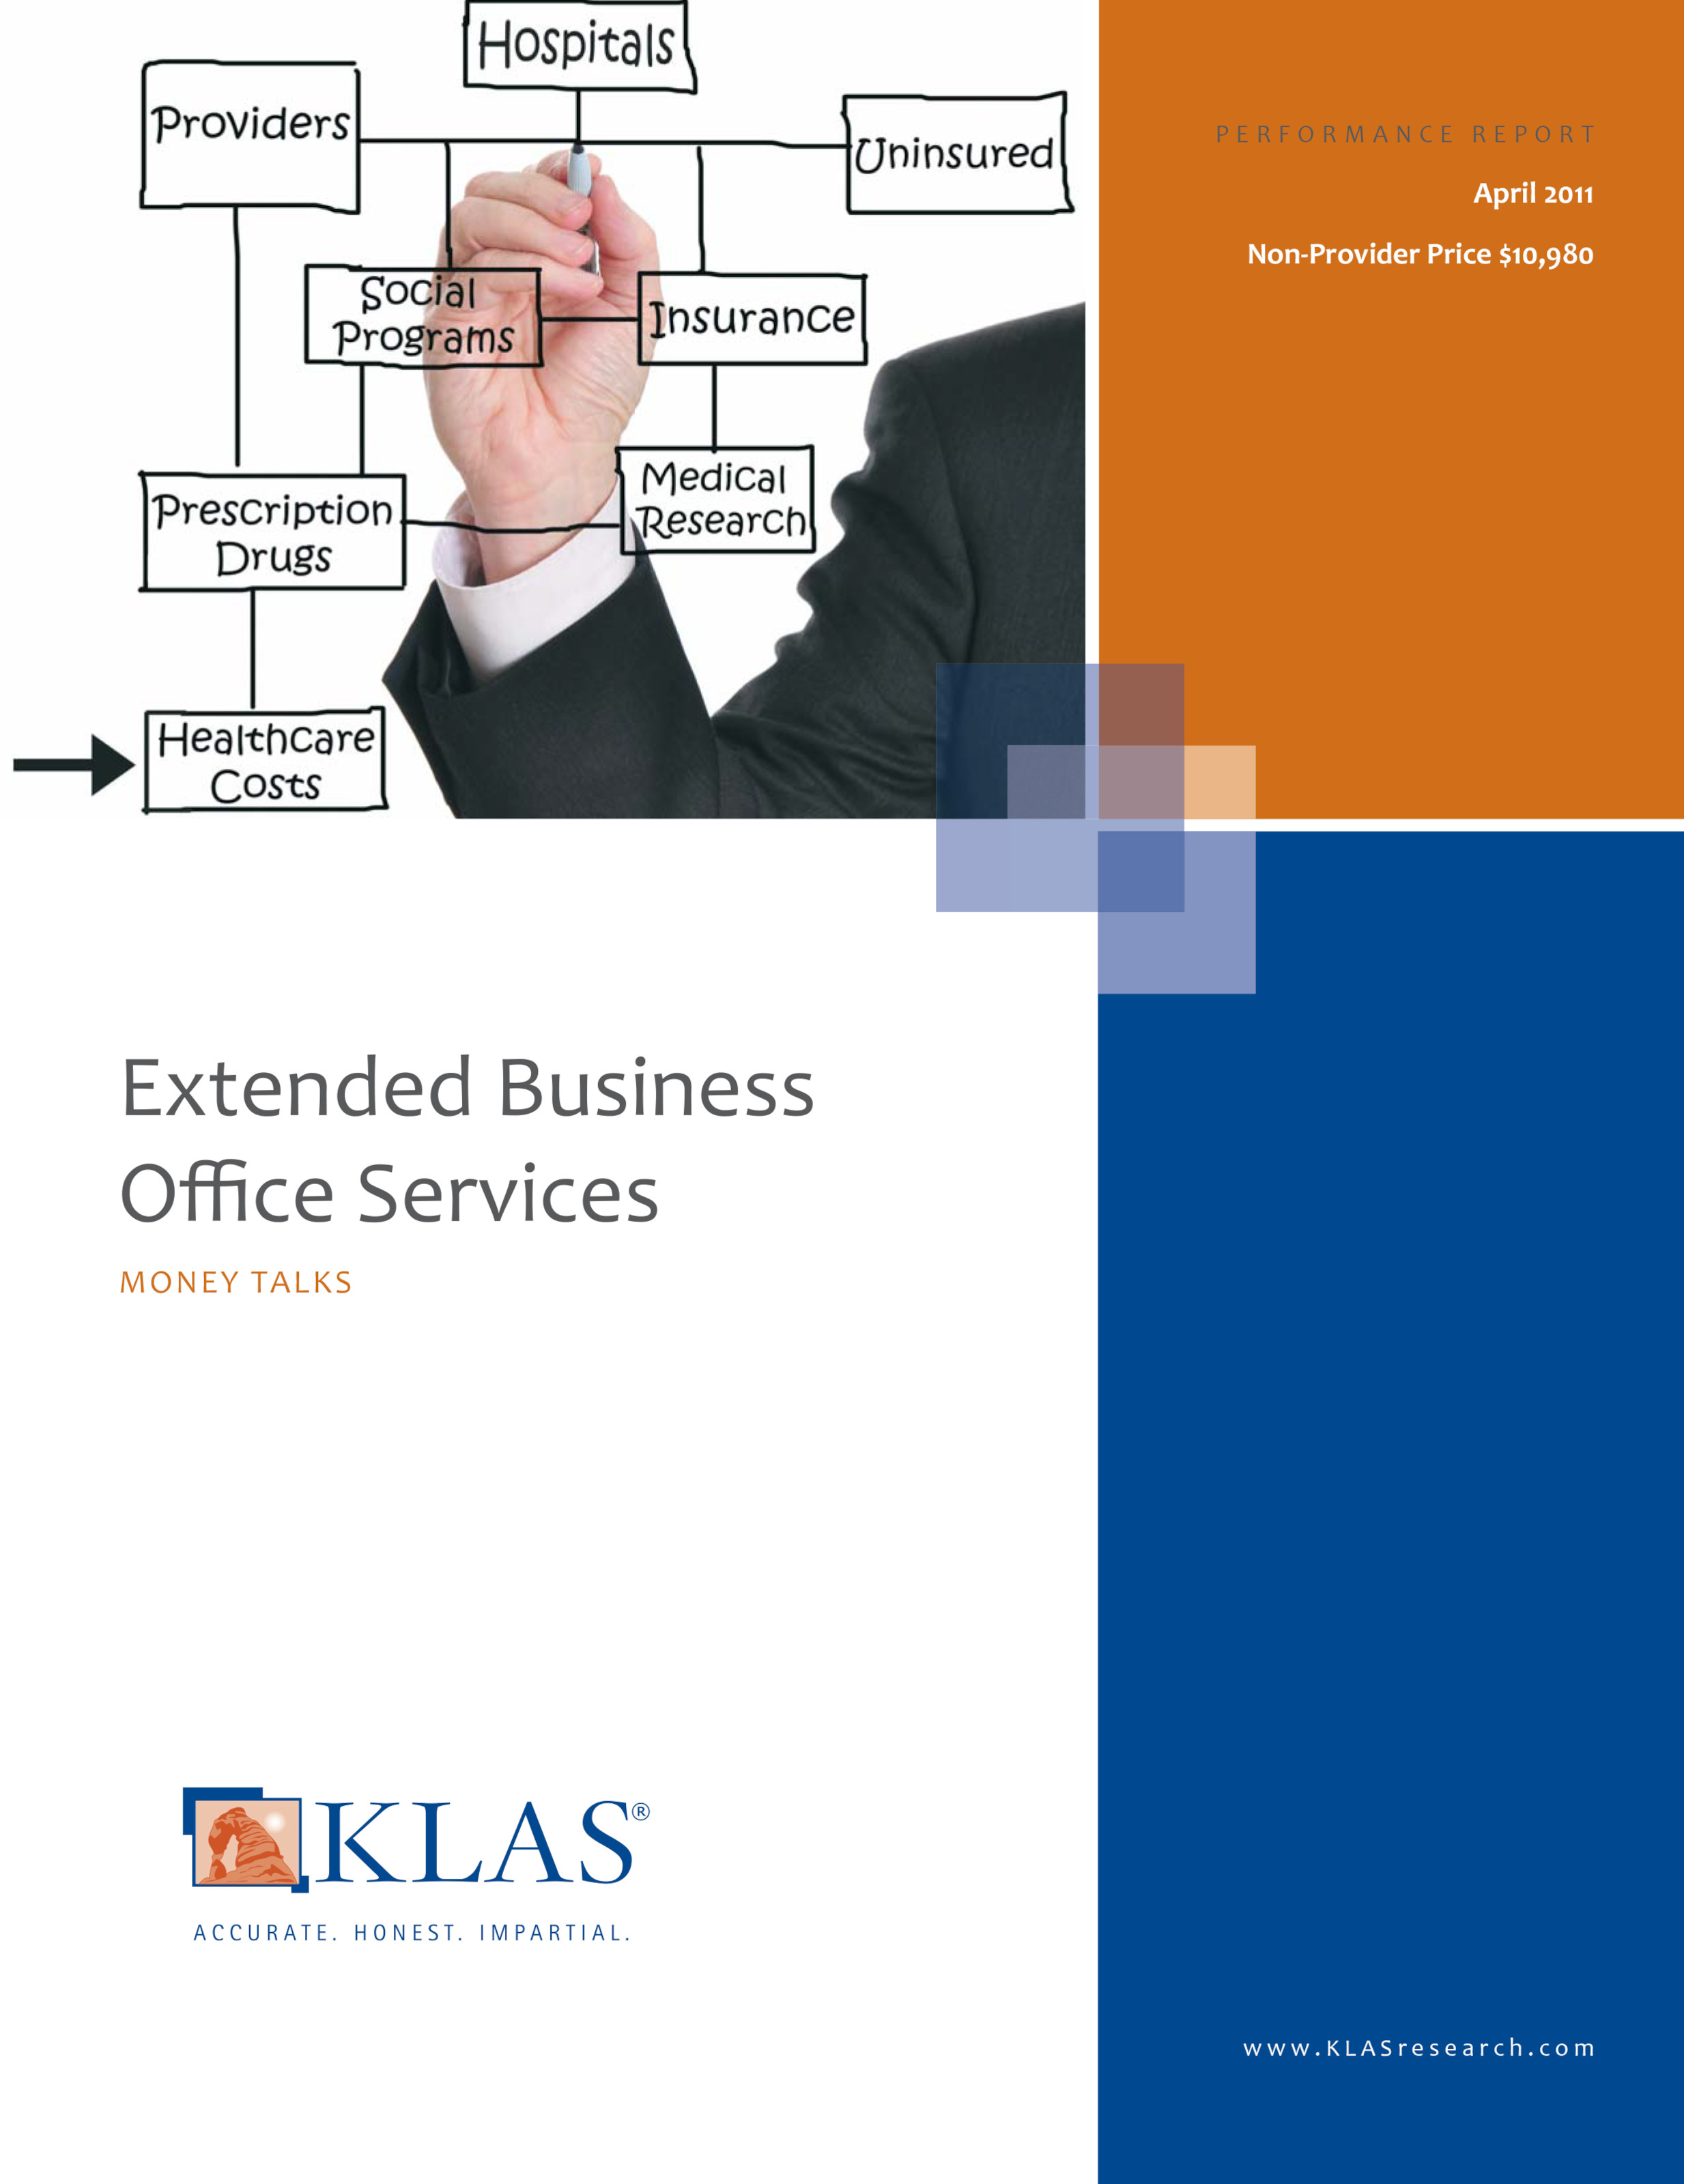 Extended Business Office Services